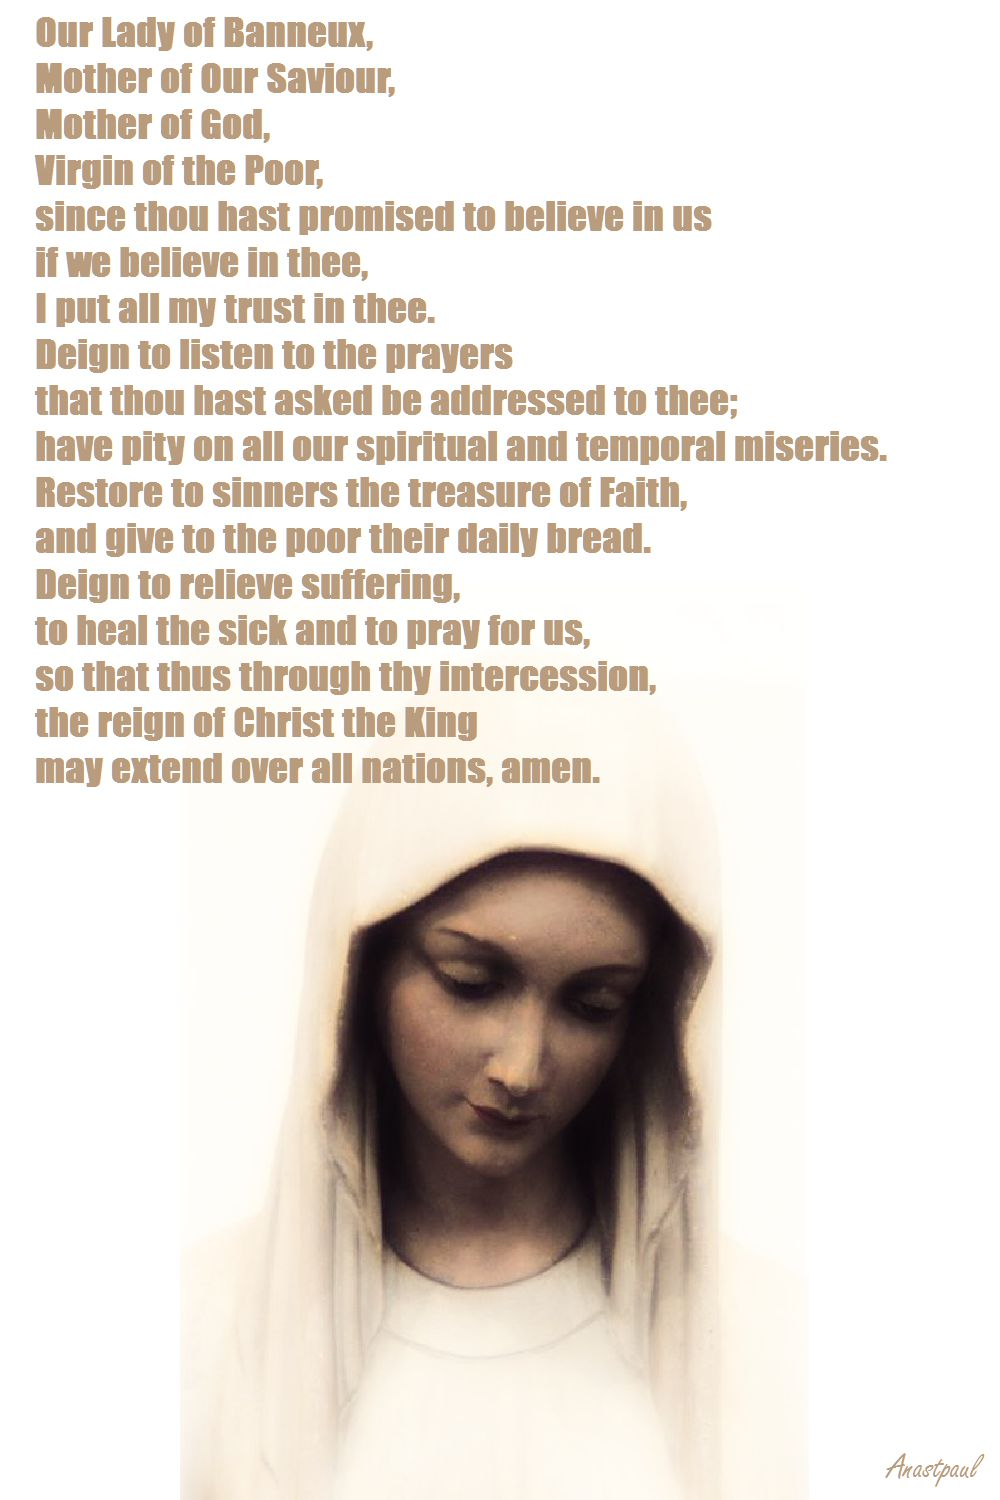 prayer-to-our-lady-of-banneux-15-jan